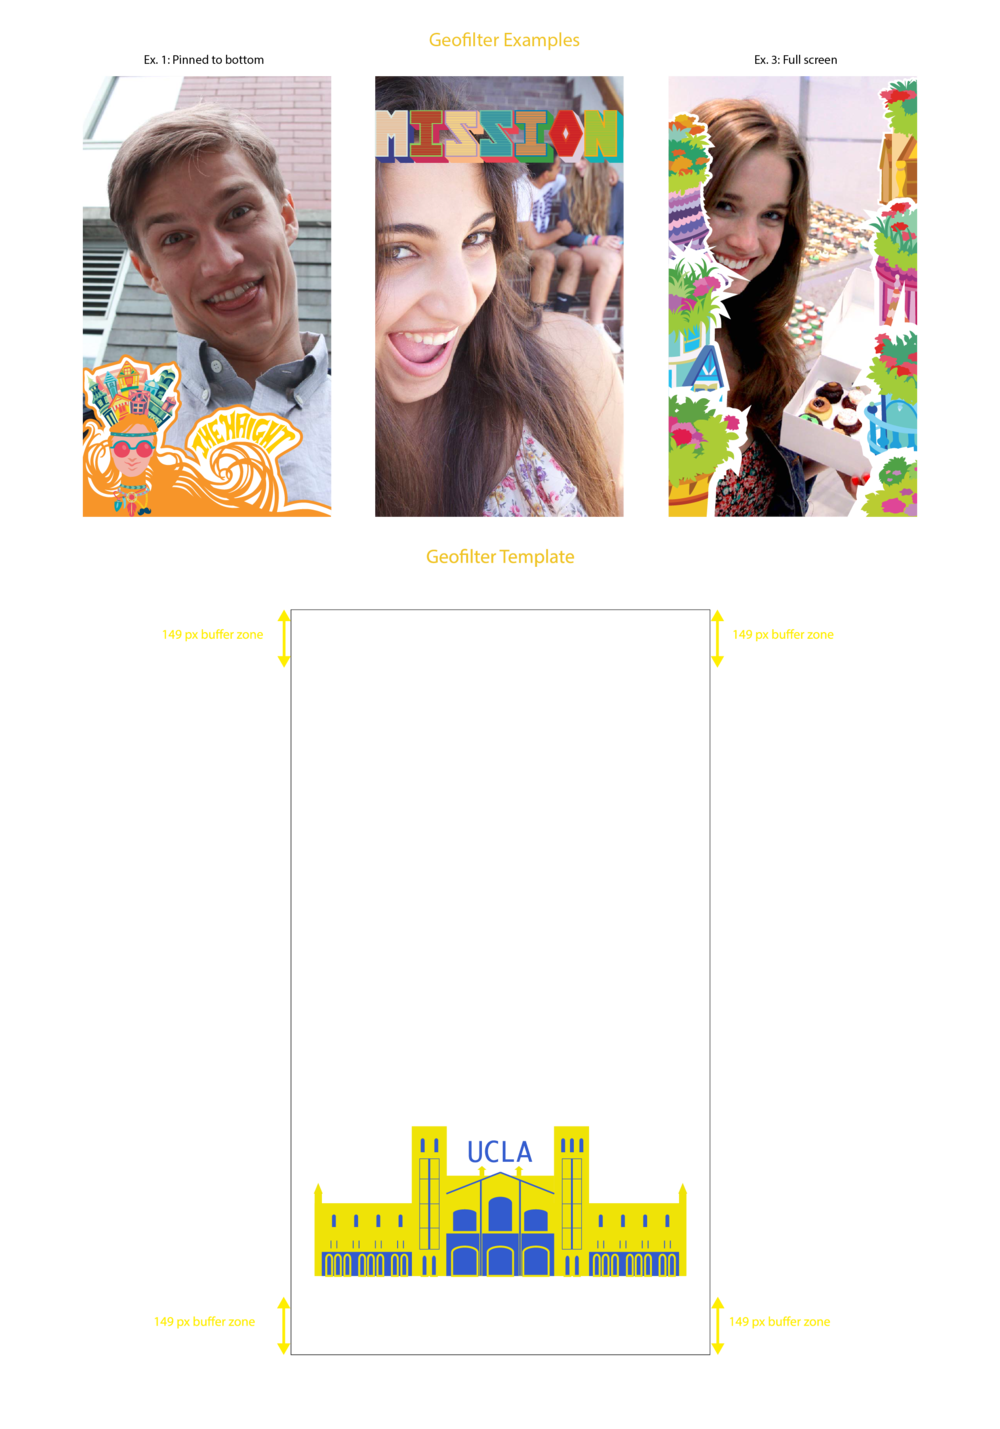 UCLA Royce geofilter-03.png